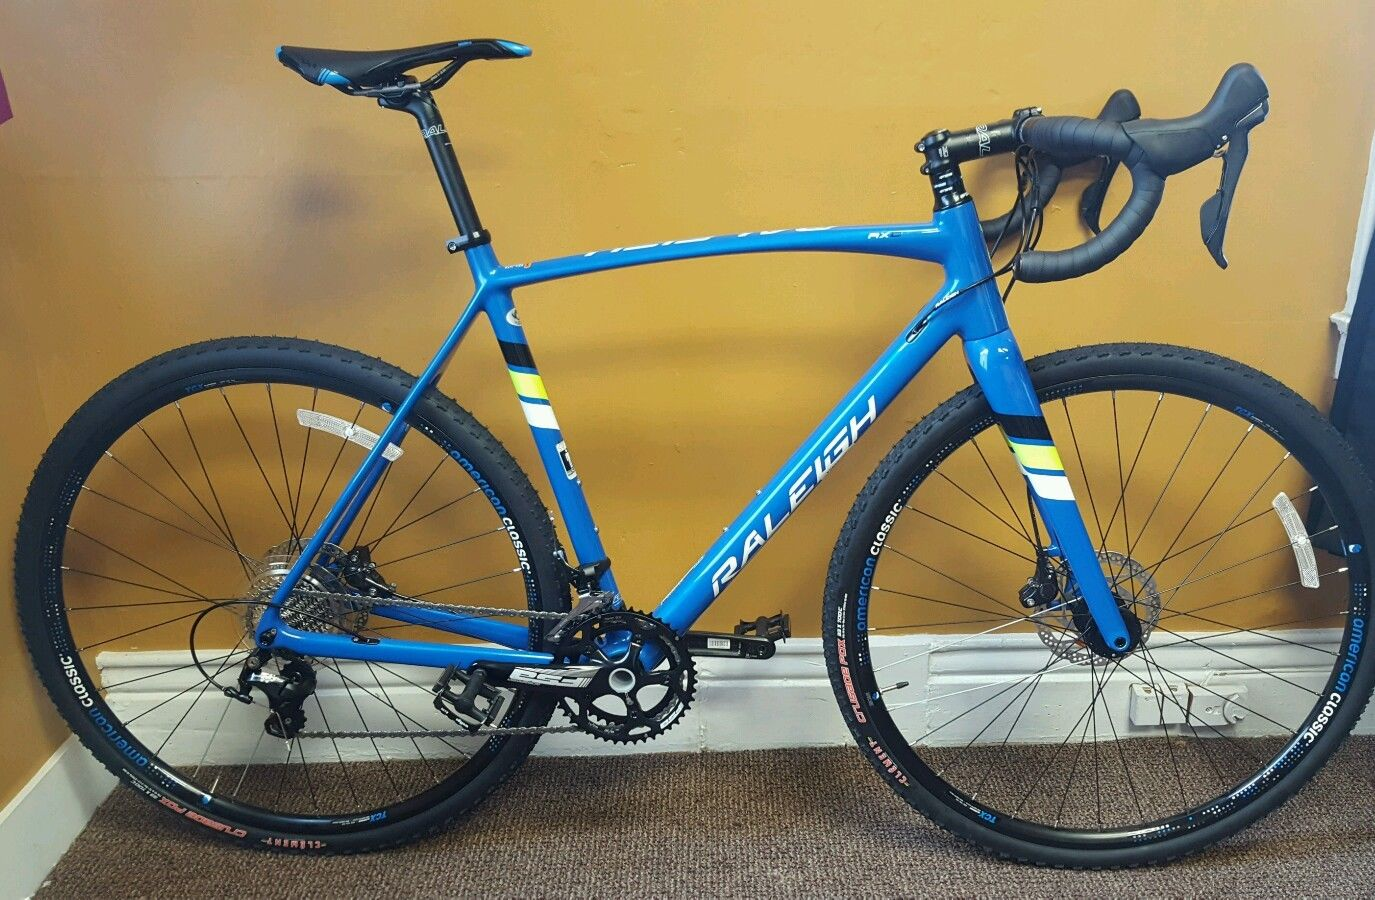 New Raleigh RXC Pro Canti Carbon Cyclocross CX Bike ......$750 USD